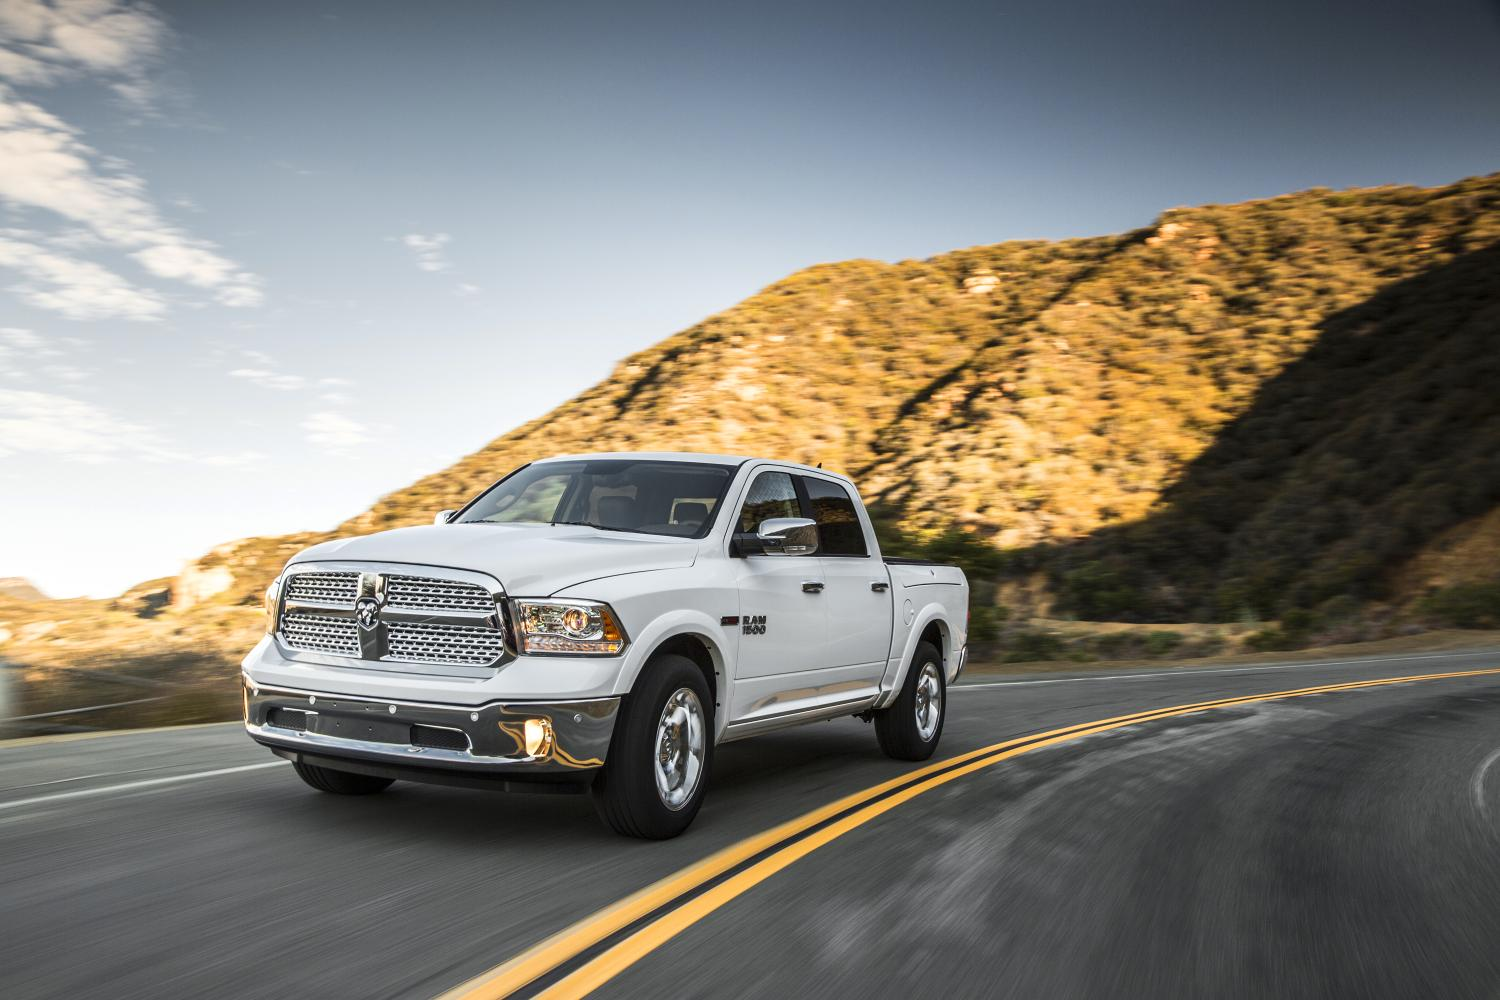 Fiat Chrysler seeks diesel emission certification from EPA